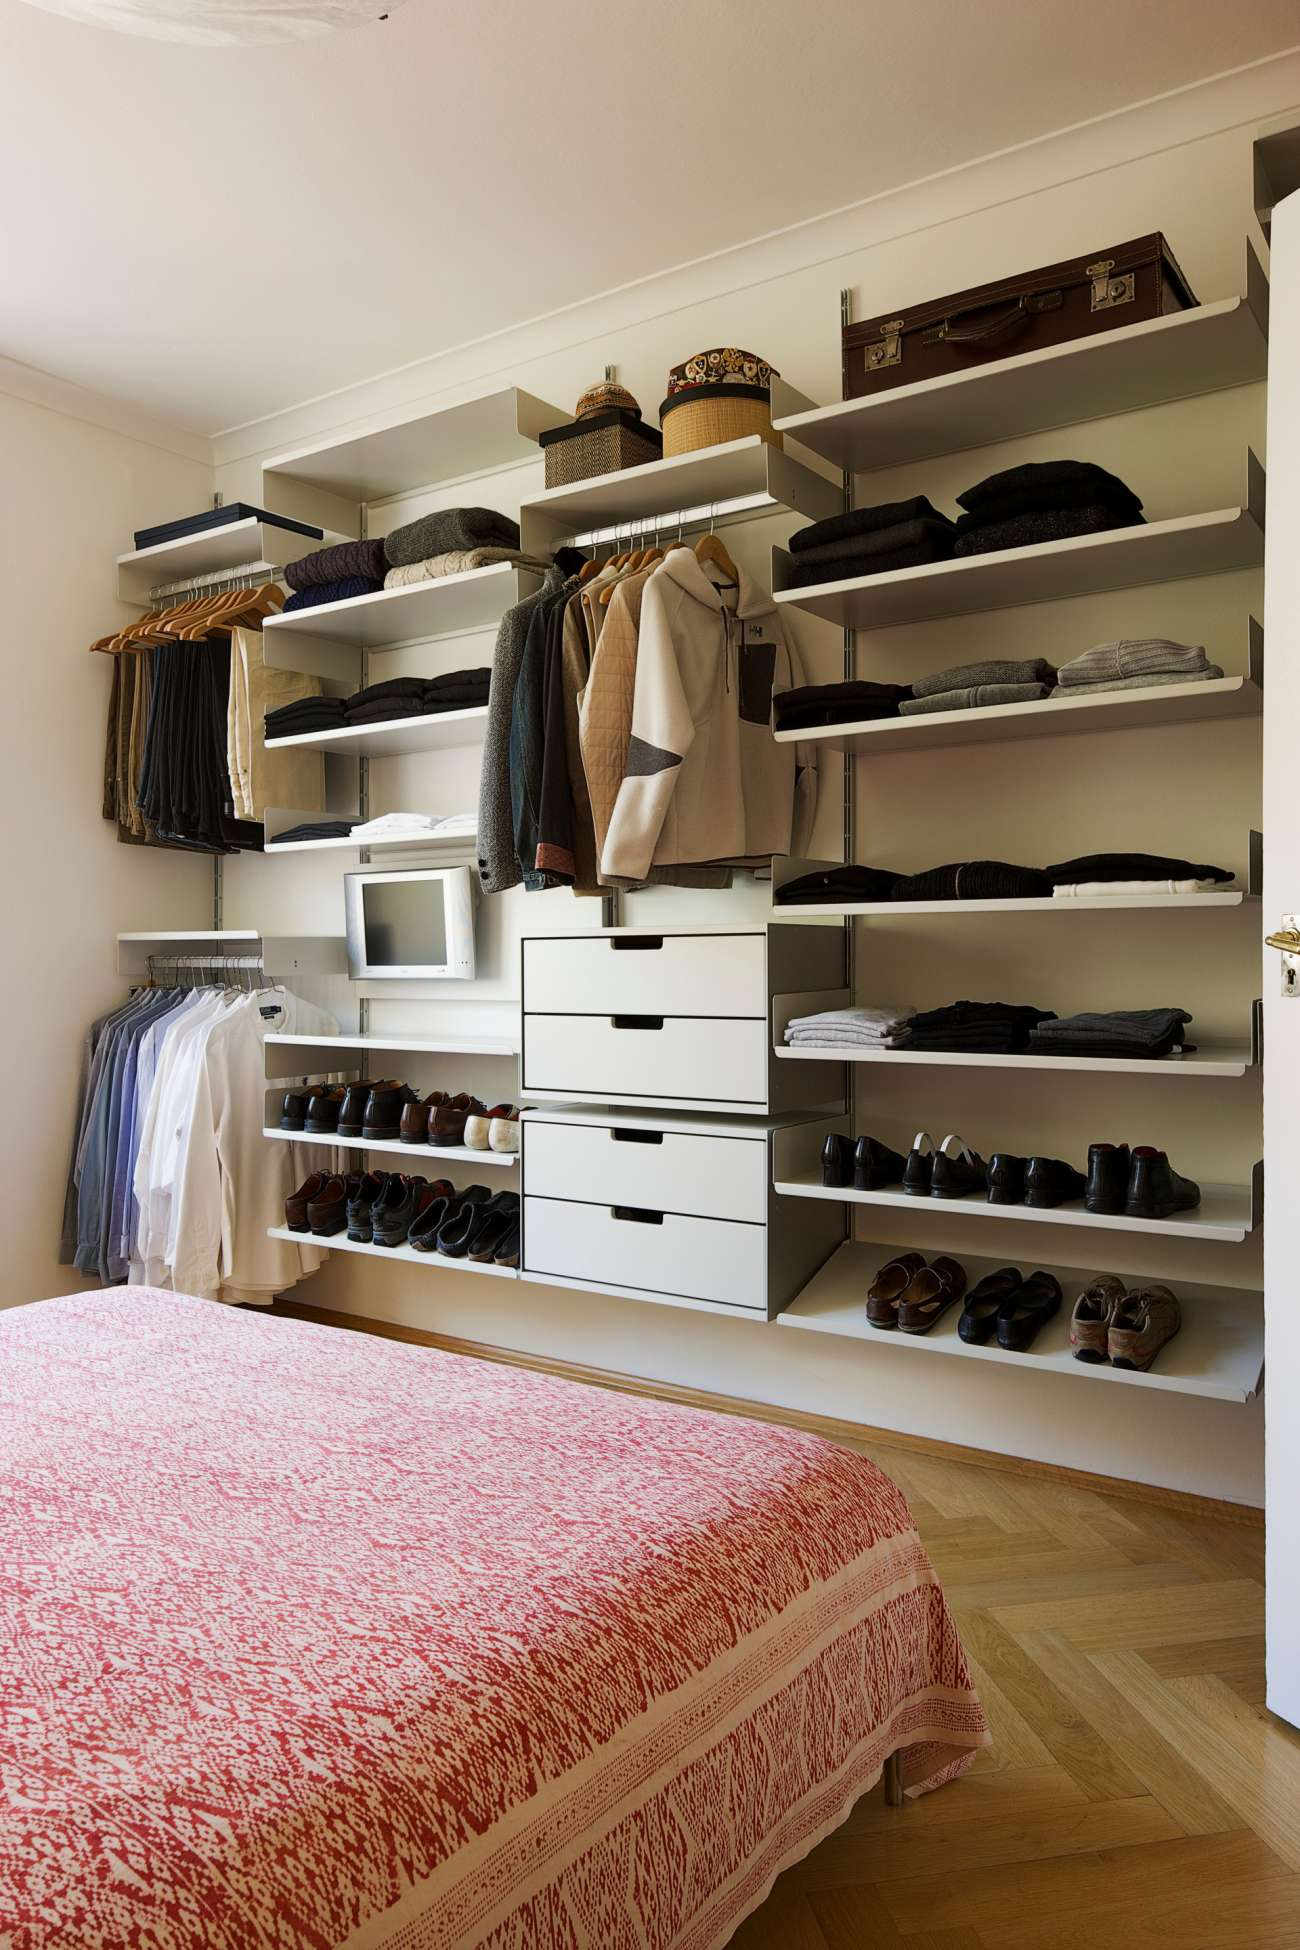 Bedroom Shelving Ideas On The Wall Of Cool Storage Systems Pictures Decoration